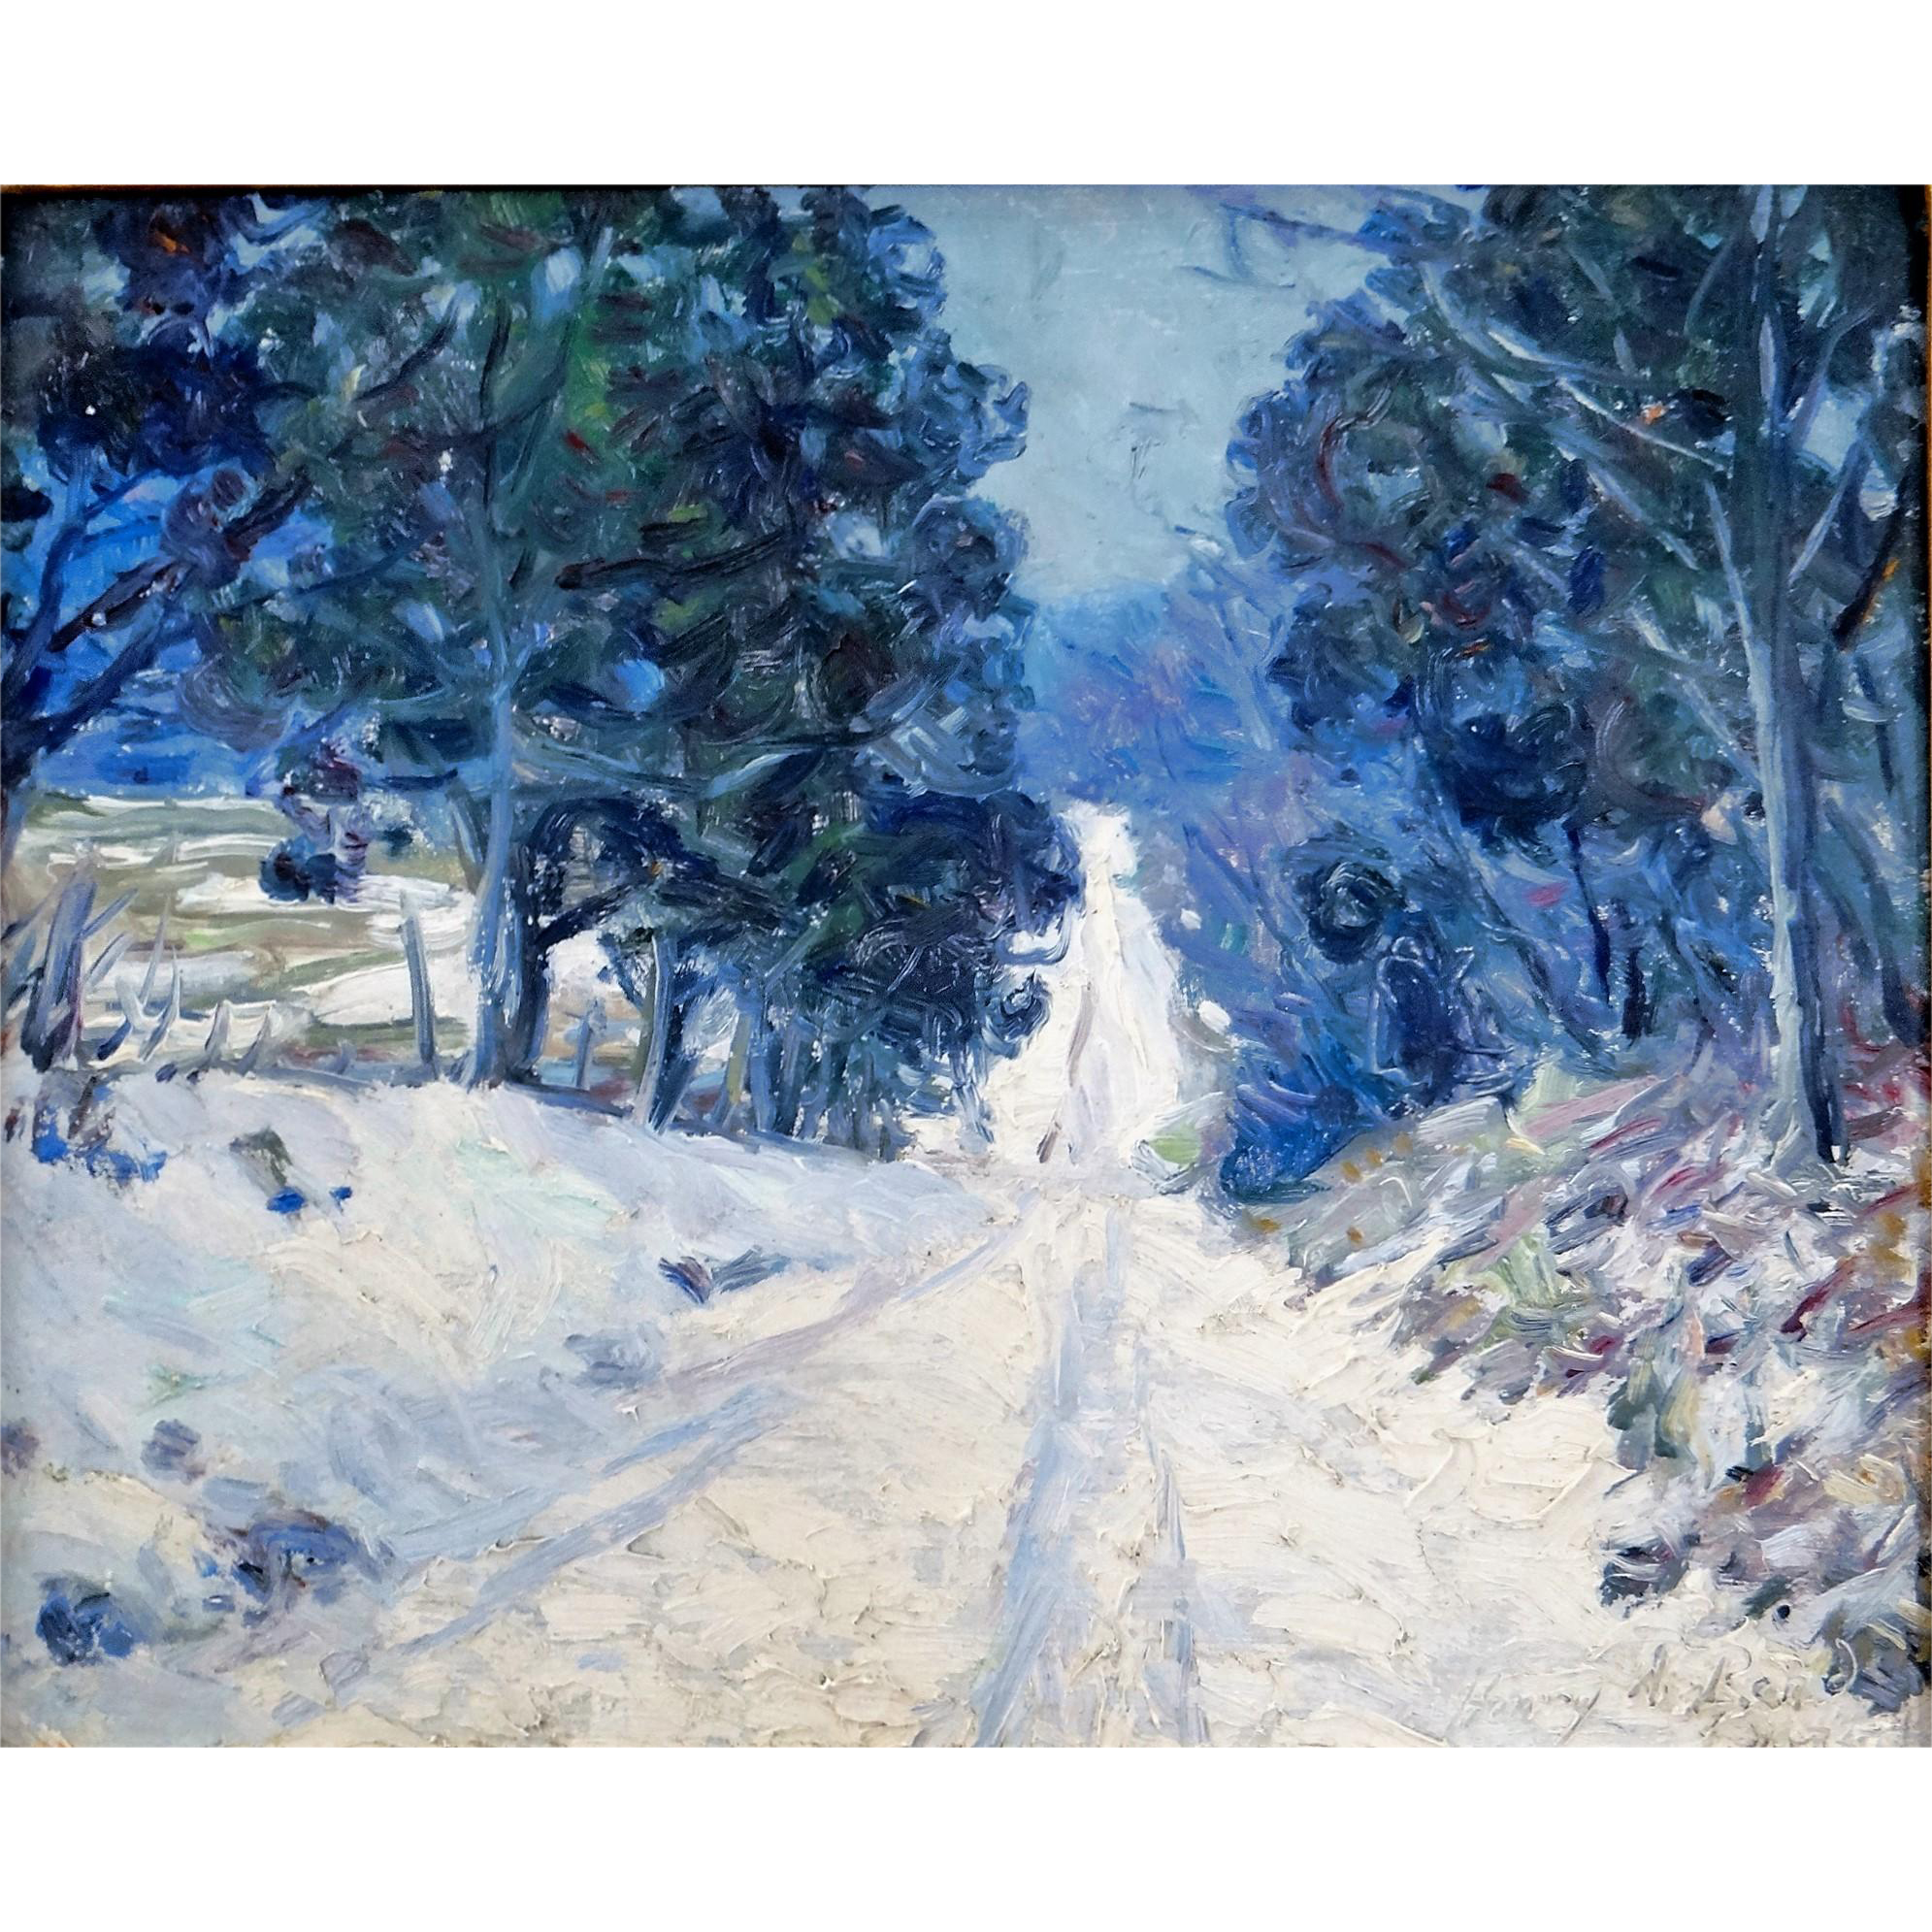 Sargent drawing landscape. Impressionist painting by henry